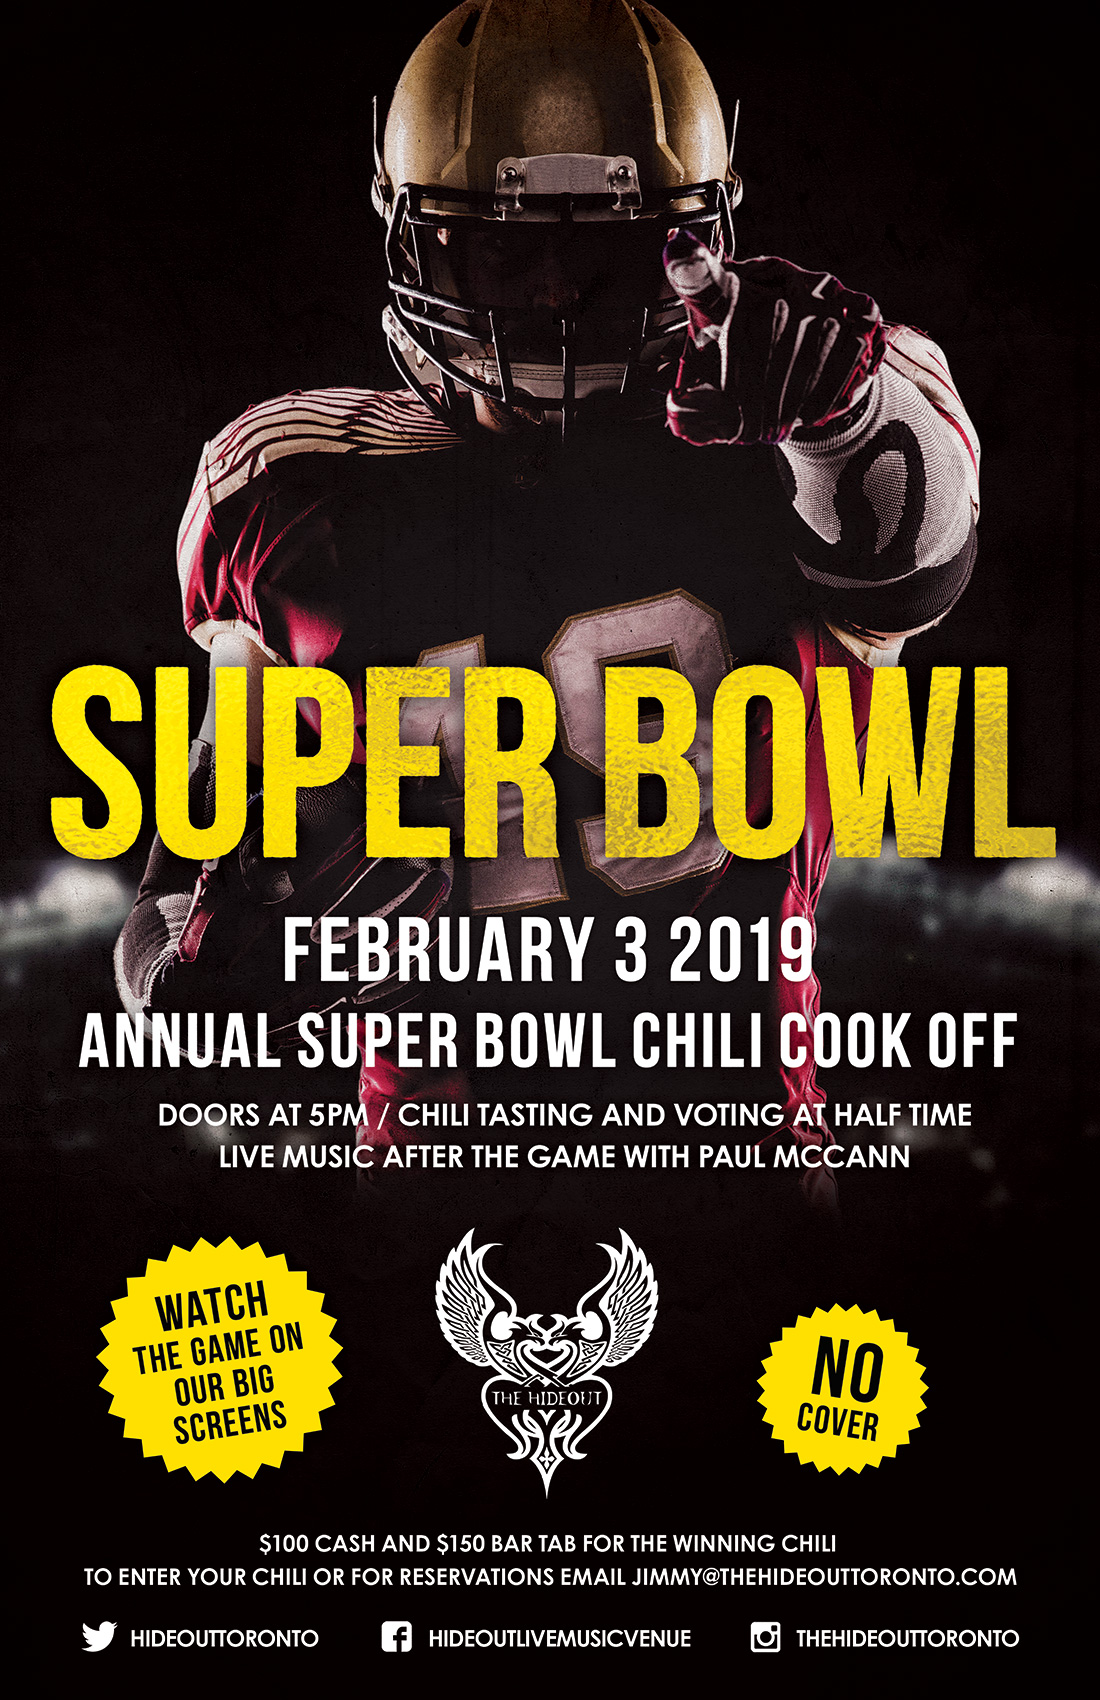 Hideout Super Bowl Party and Chilli Cook-Off 2019. Prizes include beer-4-a-year sponsored by Amsterdam Brewing Company, a night to remember with Nütrl Vodka, cash prizes, swag and more. Free chilli tasting at half time. Late night tunes with Paul McCann. No cover all night long. Doors at 5pm. Email now for guest list, reservations or to enter your kick-ass chilli - jimmy@thehideouttoronto.com.